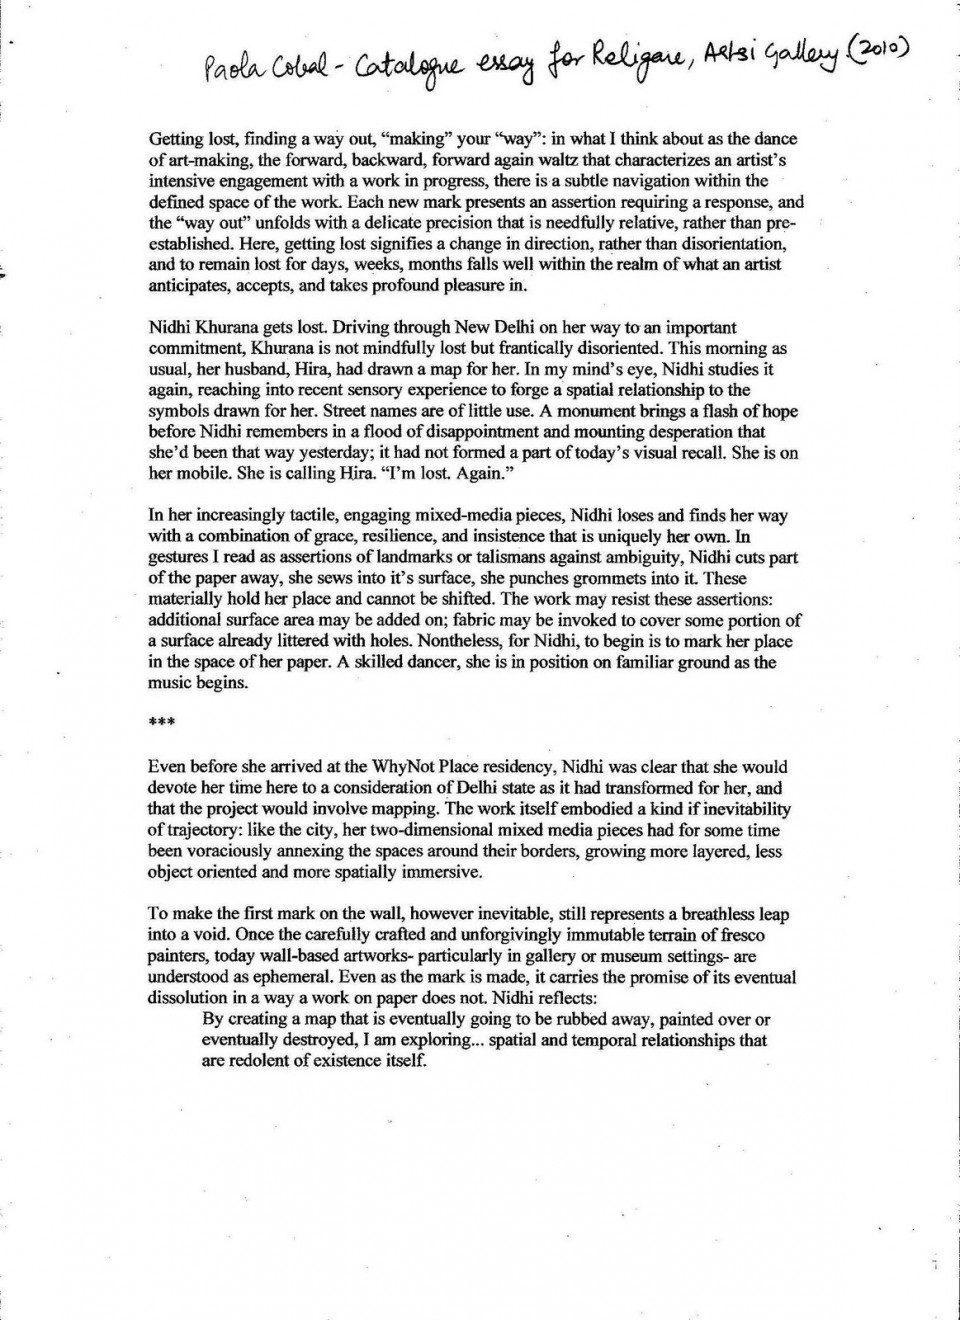 009 Paolaessay Essay Example On Stupendous Fear Of Darkness My Failure Ways To Overcome Public Speaking 960